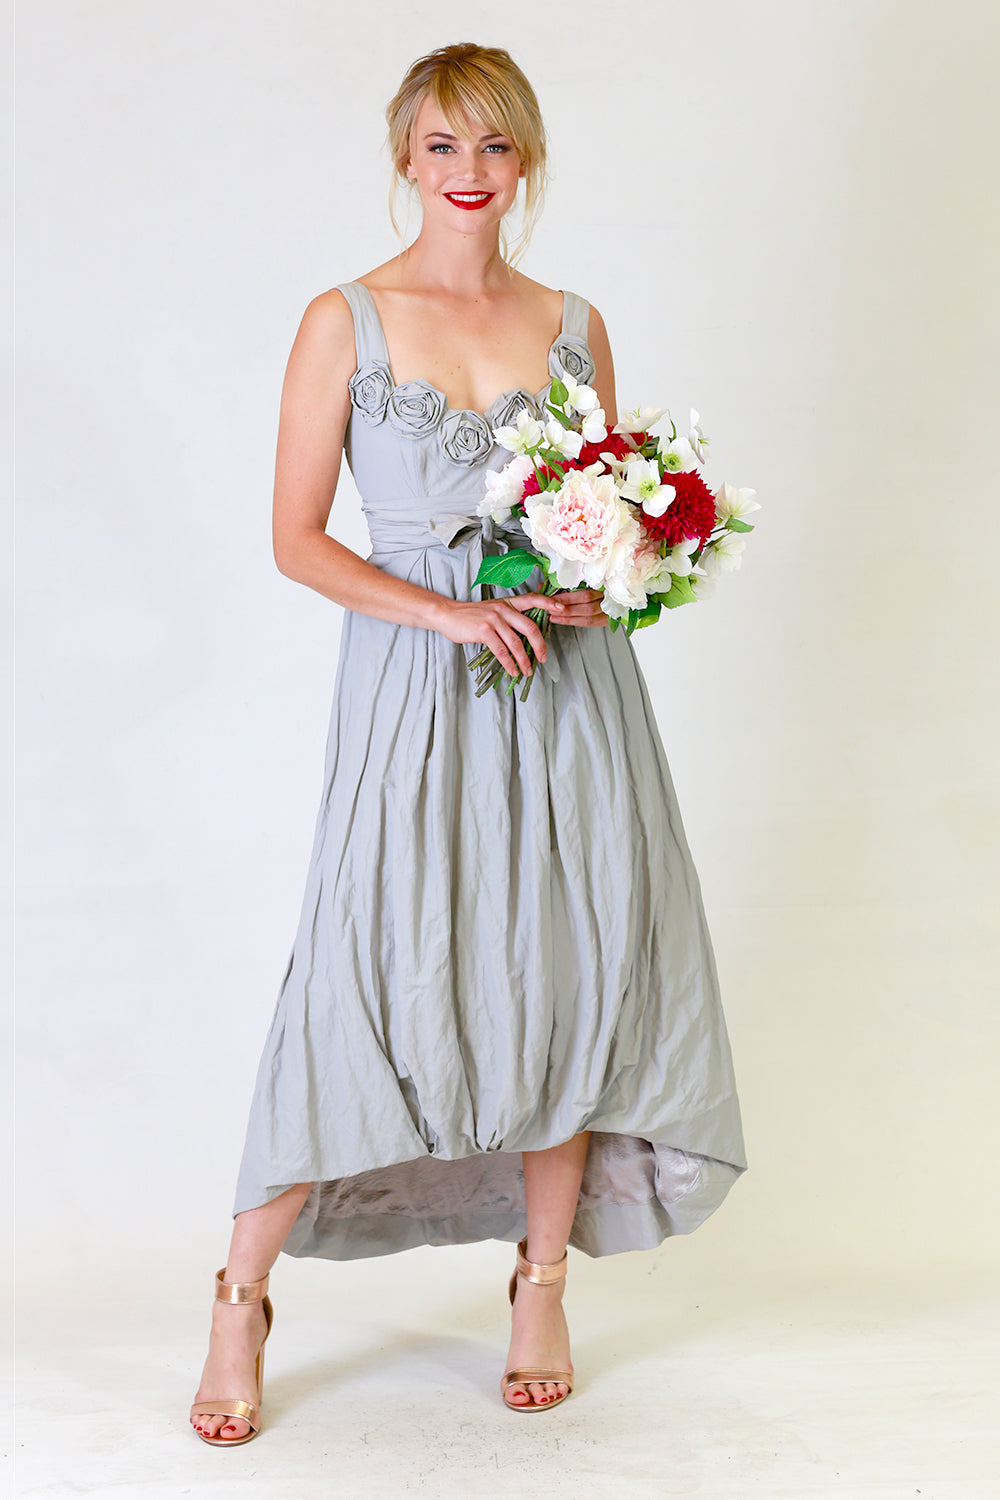 Stephana Tin Rose Dress, Annah Stretton Bridal, Grey Wedding Dress, Shot on Model / Bridesmaid NZ / Bridal Party NZ /